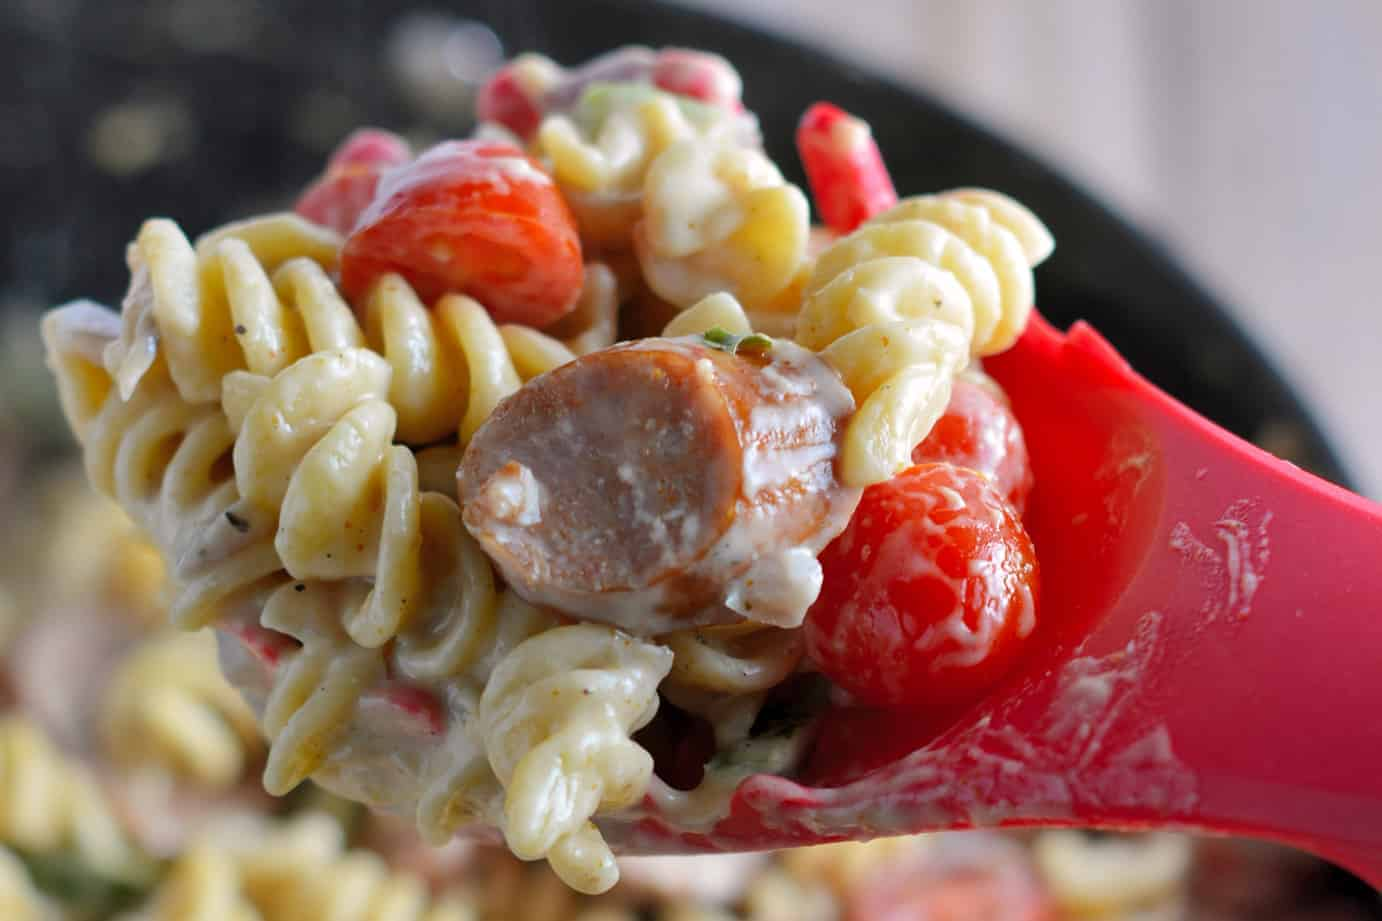 Creamy Cajun Pasta is rotini in a cream sauce with cajun seasoning, smoky andouille sausage, sautéed peppers, red onion and grape tomatoes. Takes 20 minutes to make! #cajunpasta #easypastadishes www.savoryexperiments.com